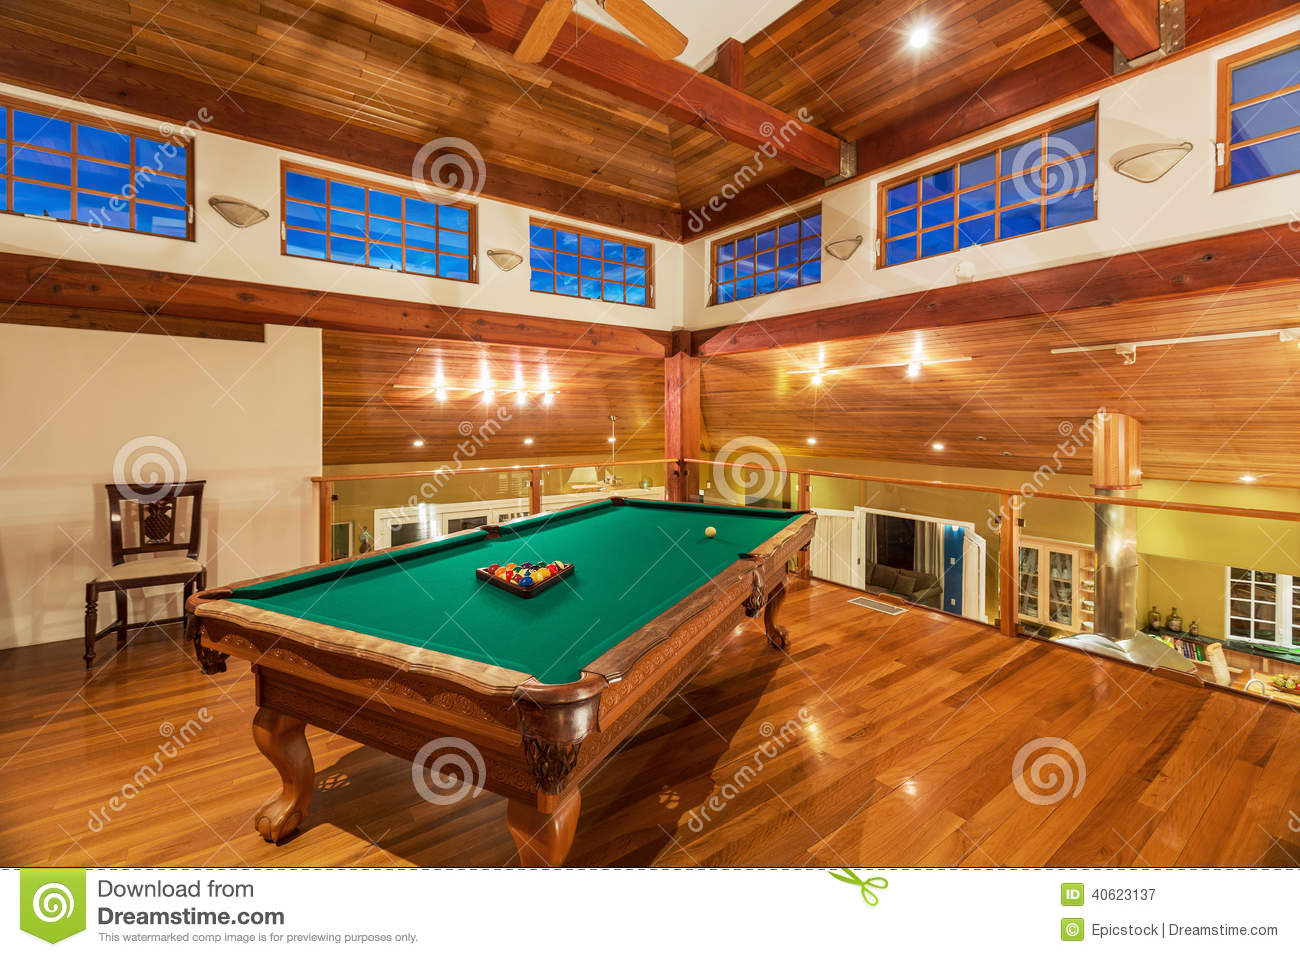 Pool table in luxury home stock photo image 40623137 for Pool table house